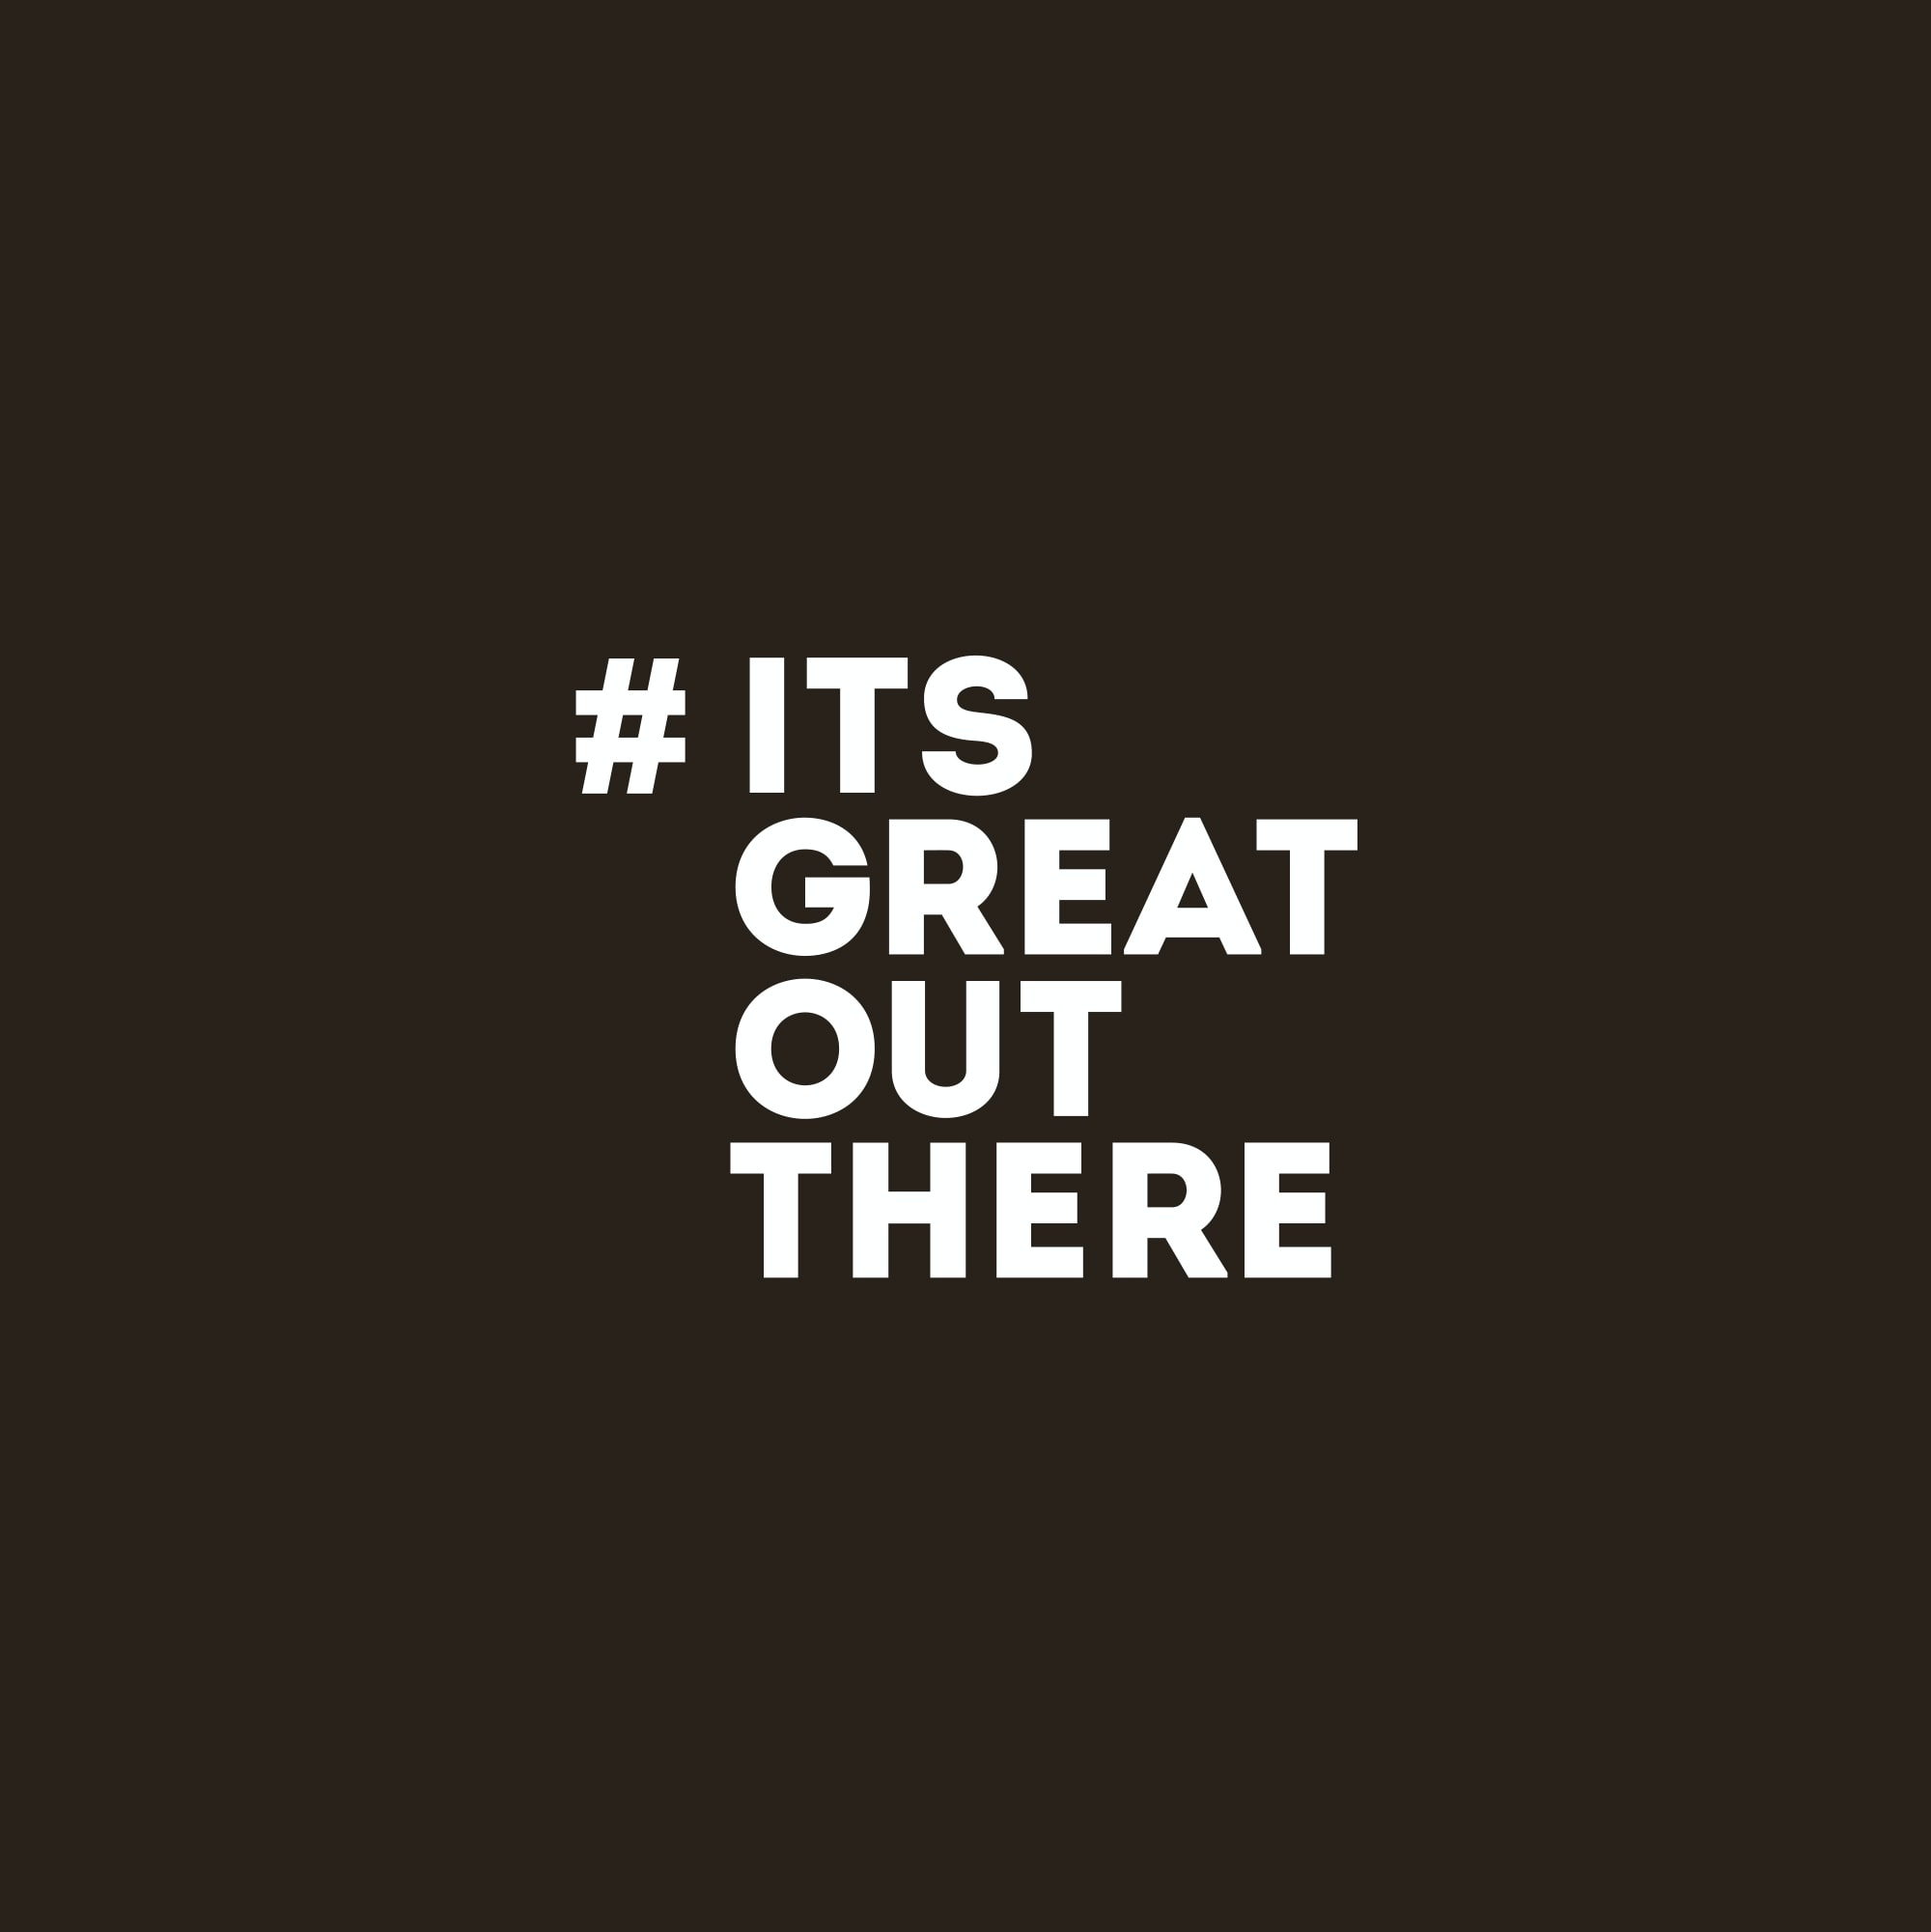 Go to itsgreatoutthere's profile